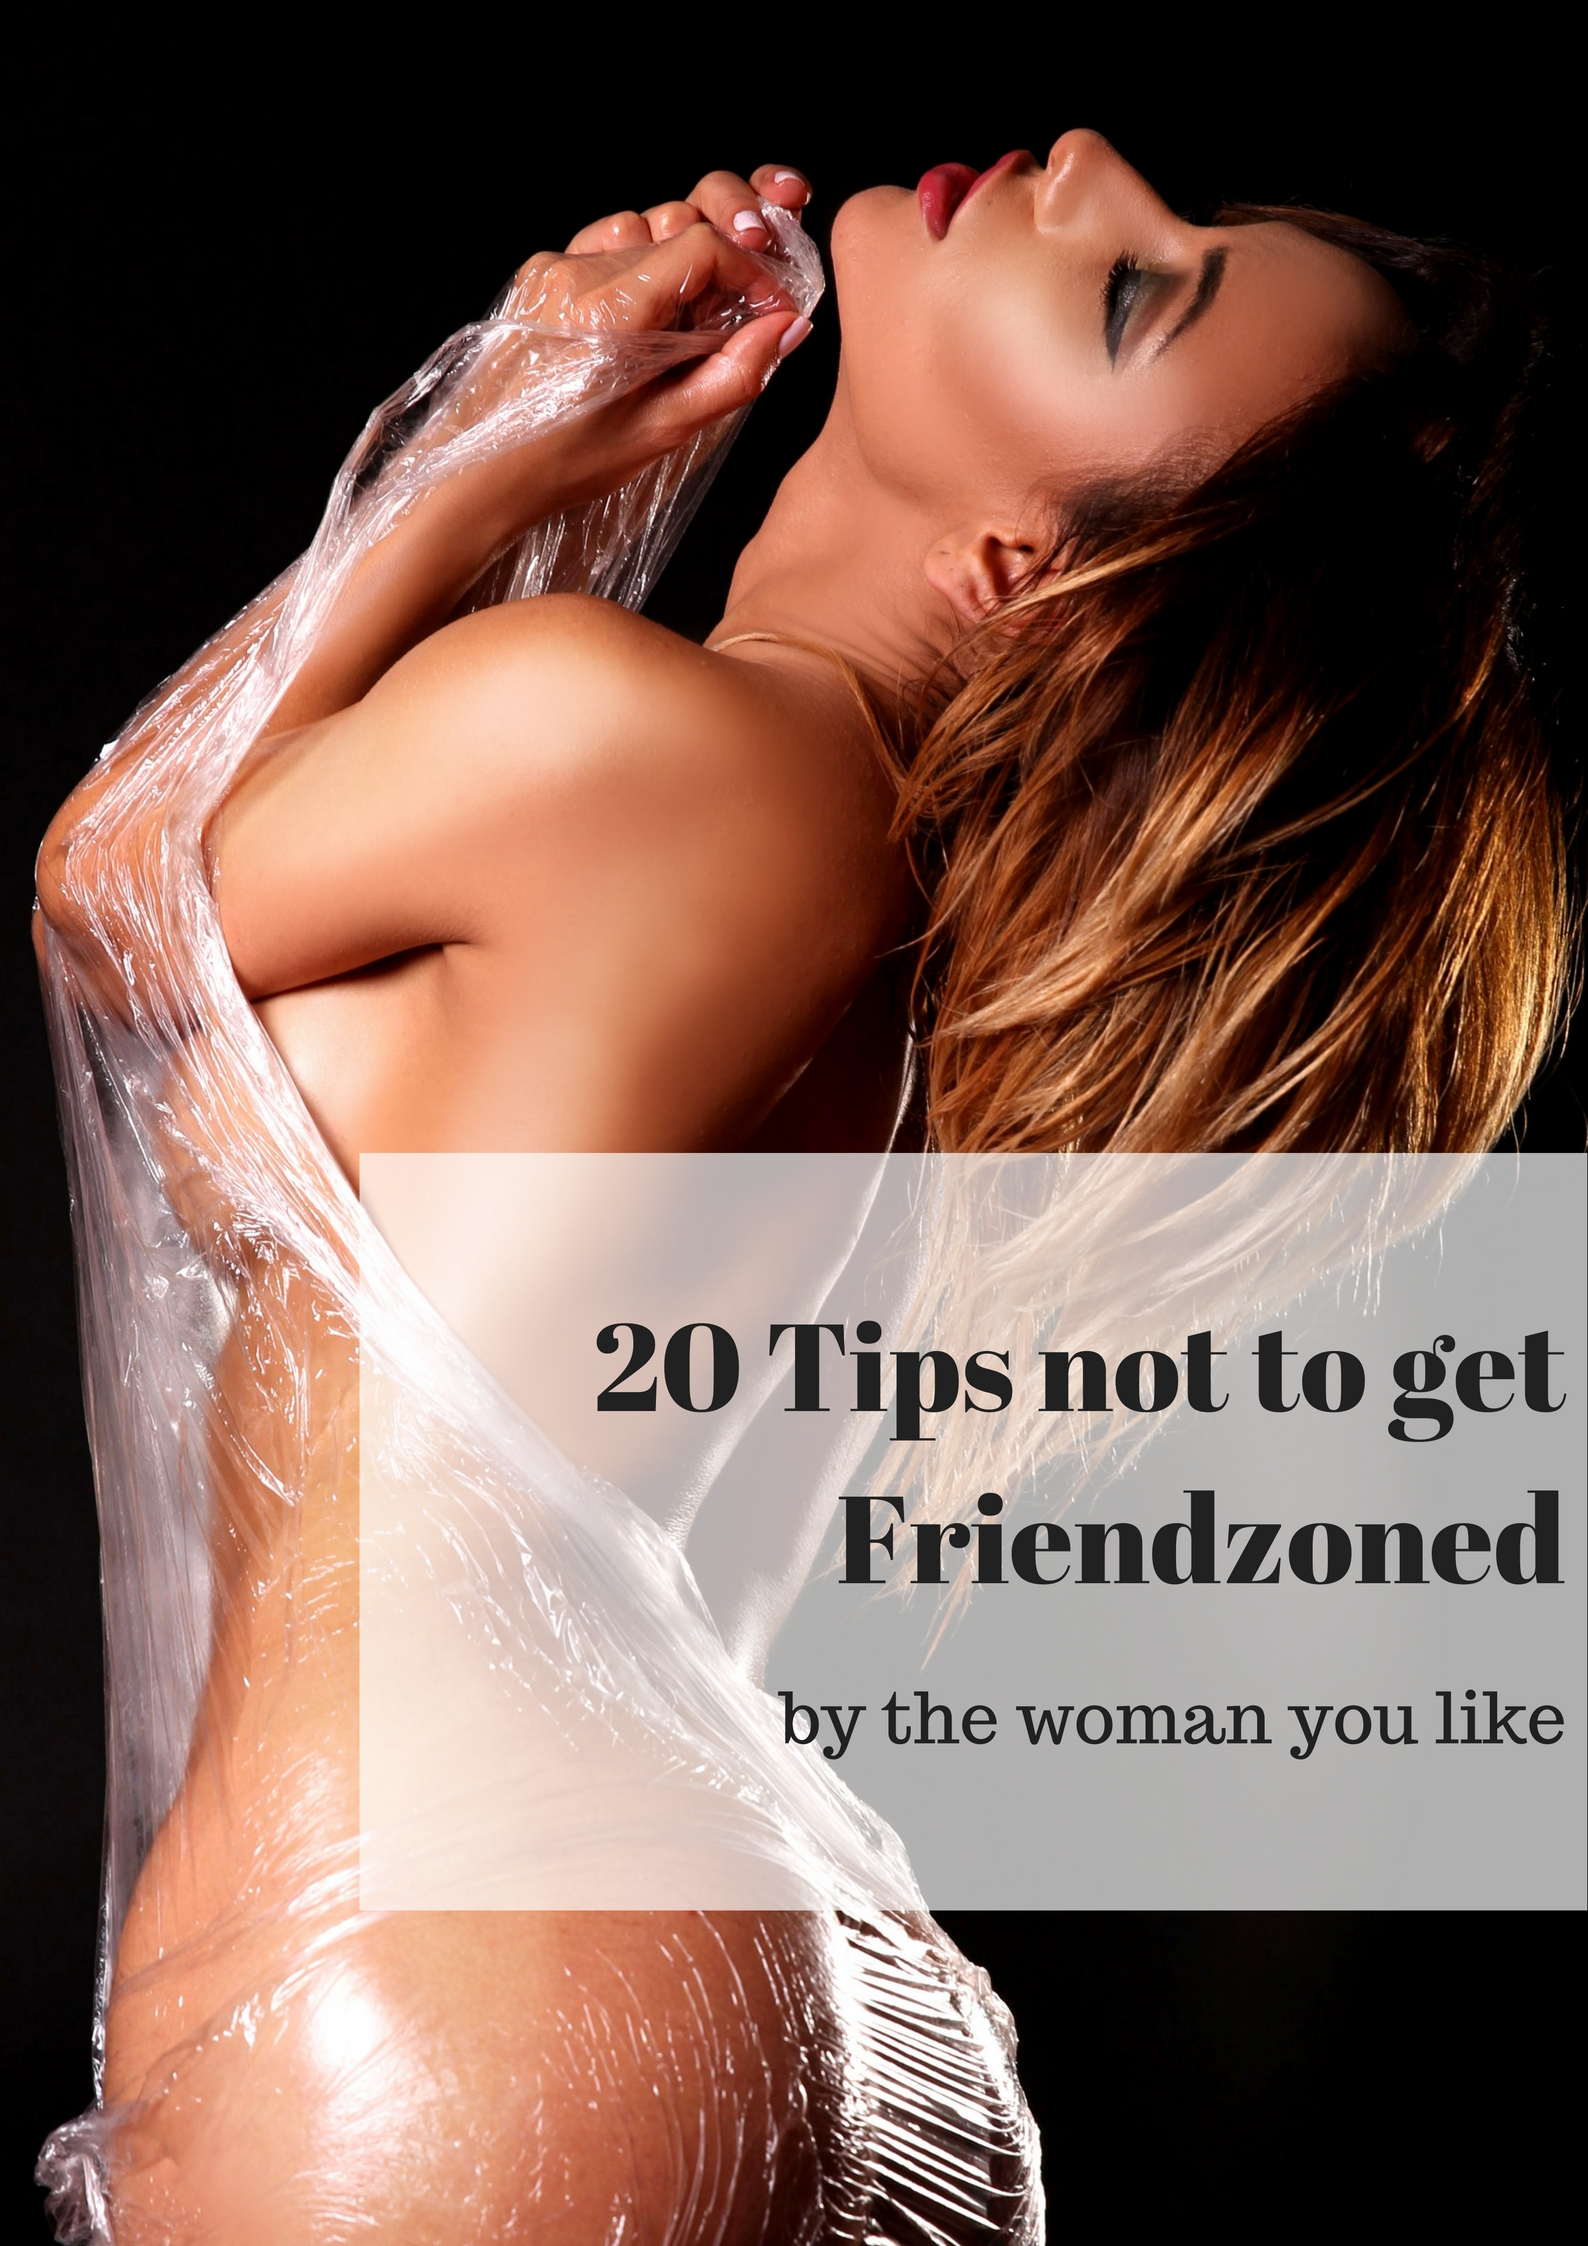 20 Tips Not To Get Friendzoned